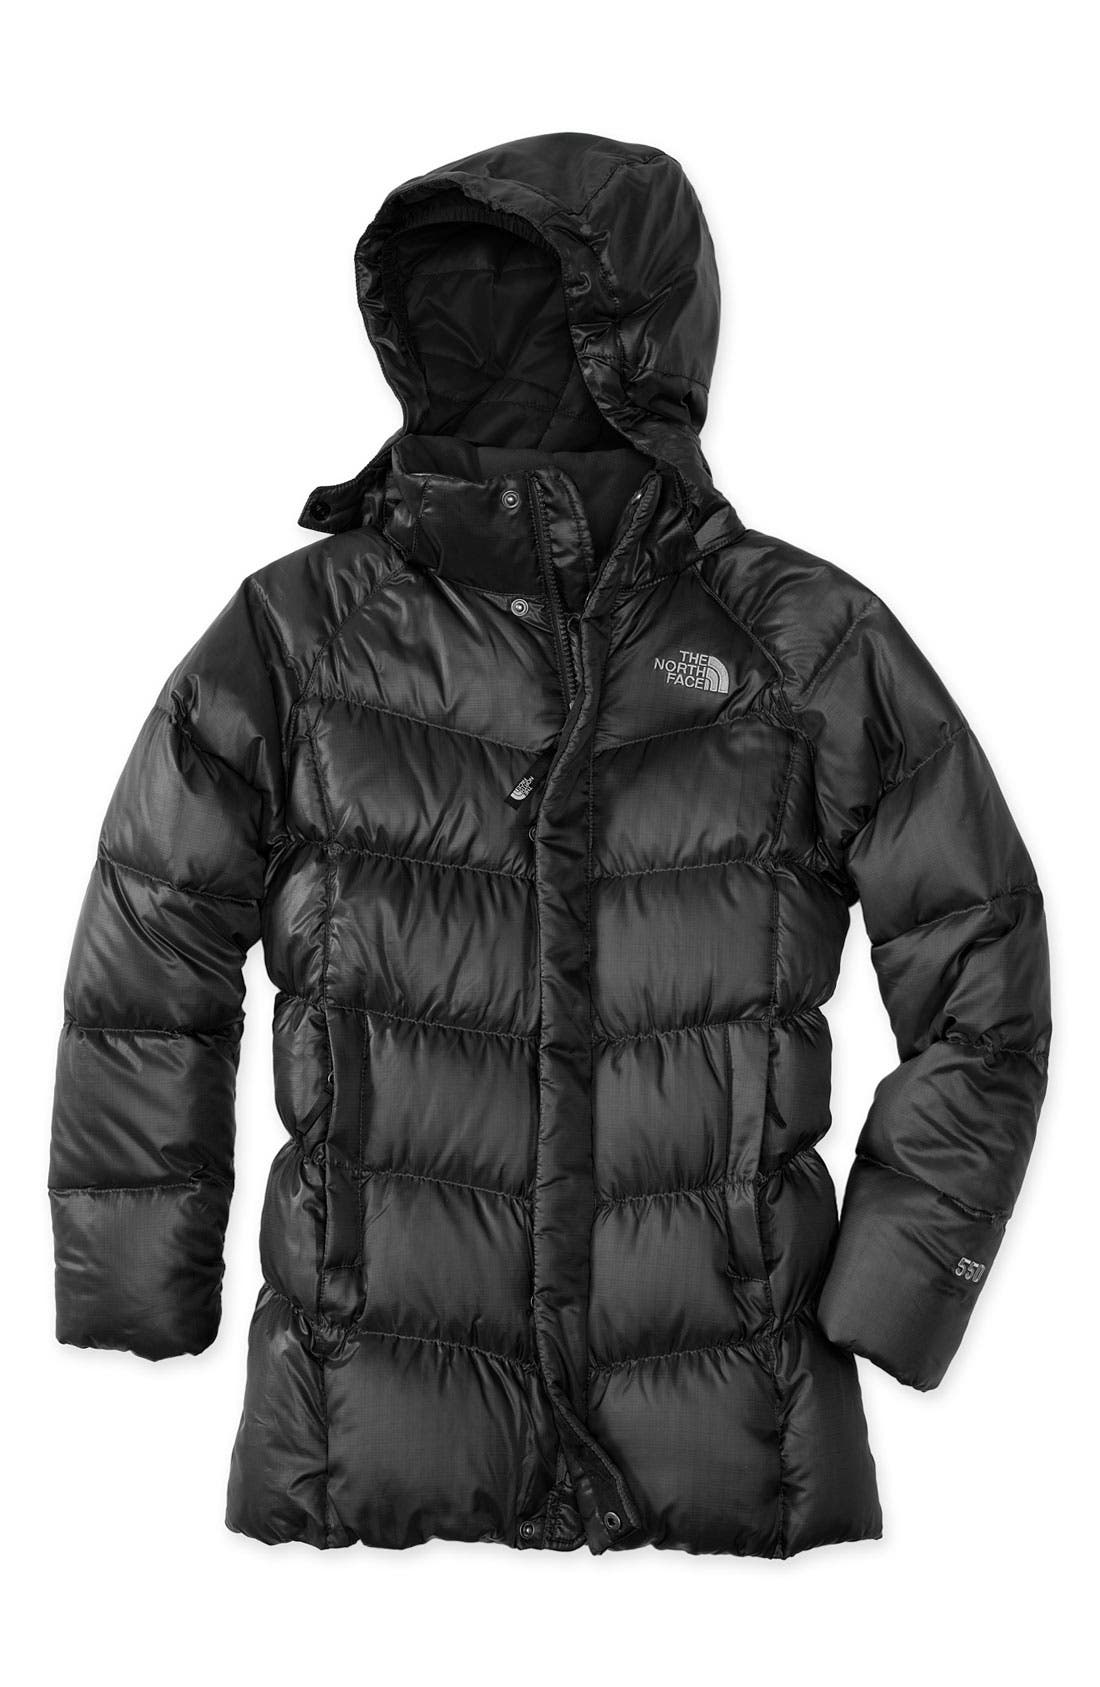 Alternate Image 1 Selected - The North Face 'Transit' Down Parka (Big Girls)